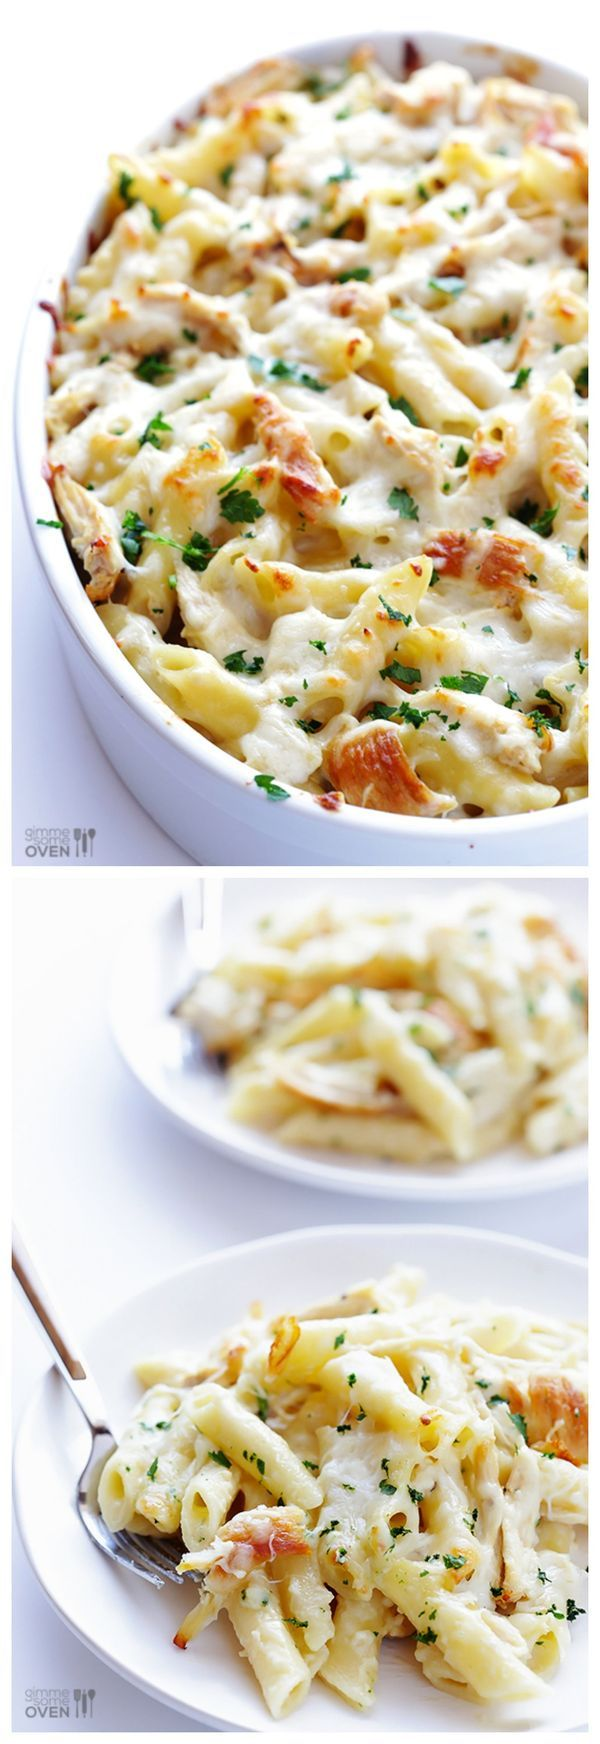 Chicken Alfredo Baked Ziti -- quick, easy, affordable, picky-eater friendly, and SO GOOD! | gimmesomeoven.com #pasta #italian #recipe